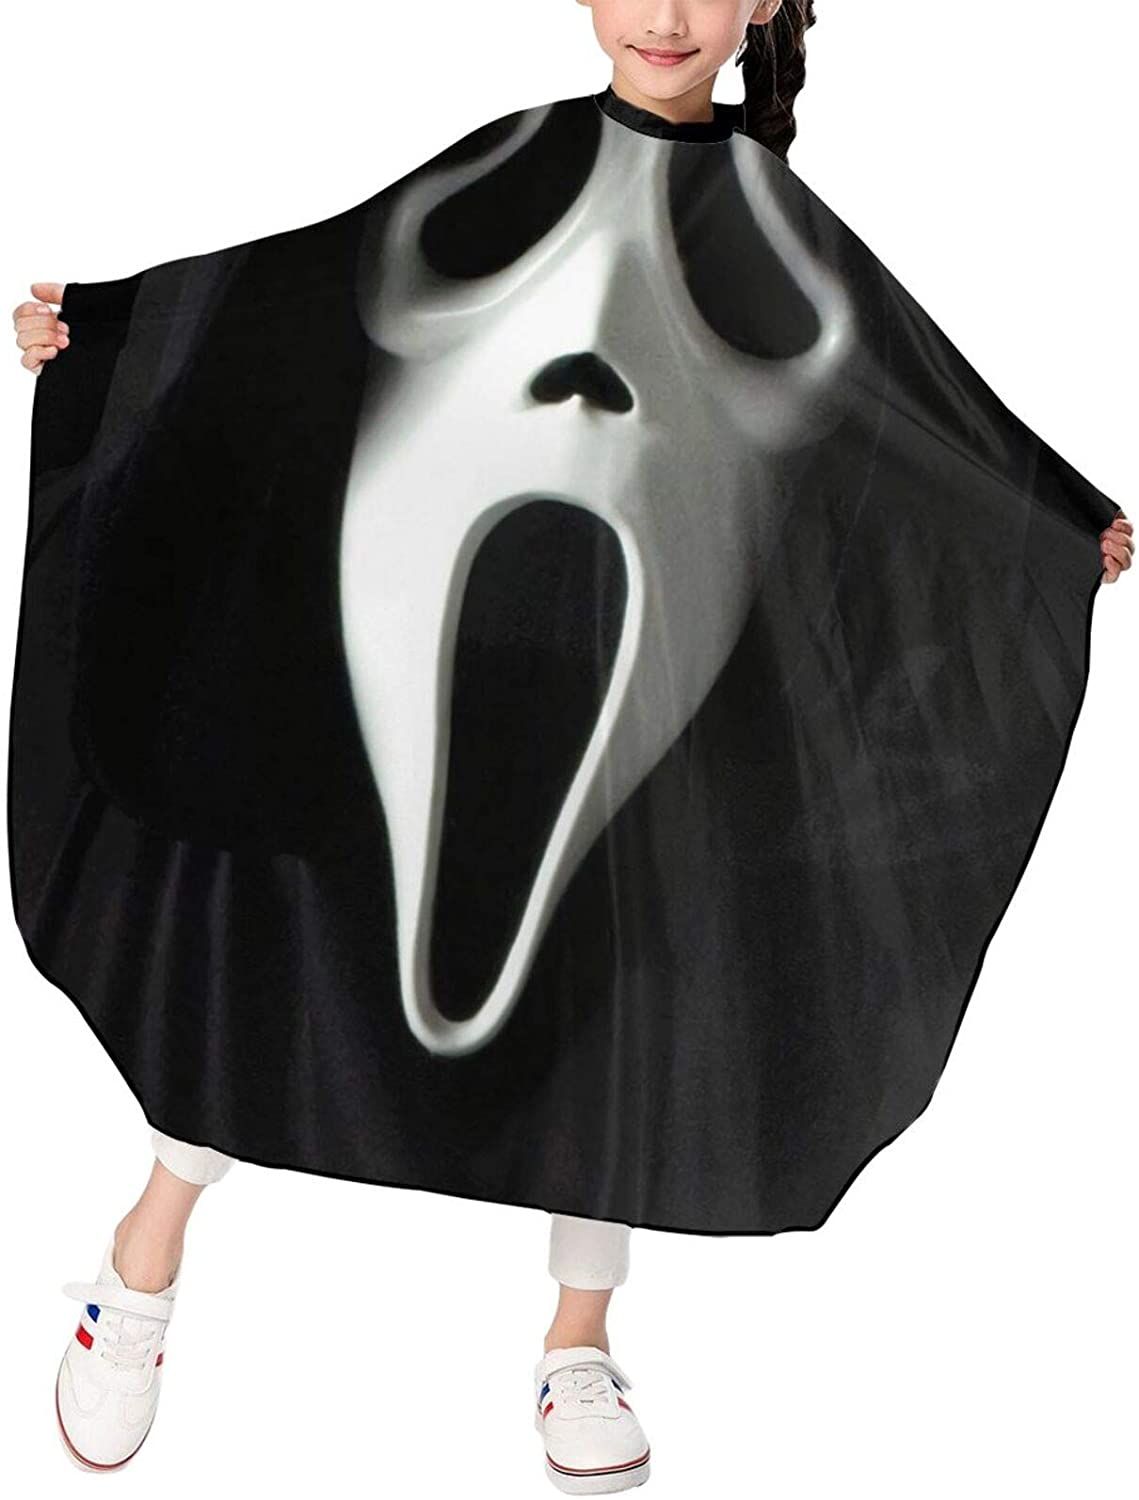 Elizadaisy Scream1 Professional Salon Hair Styling Cloth Apron Cover Gown Barber Cutting Cape Waterproof Adjustable Snap for Hairstylists